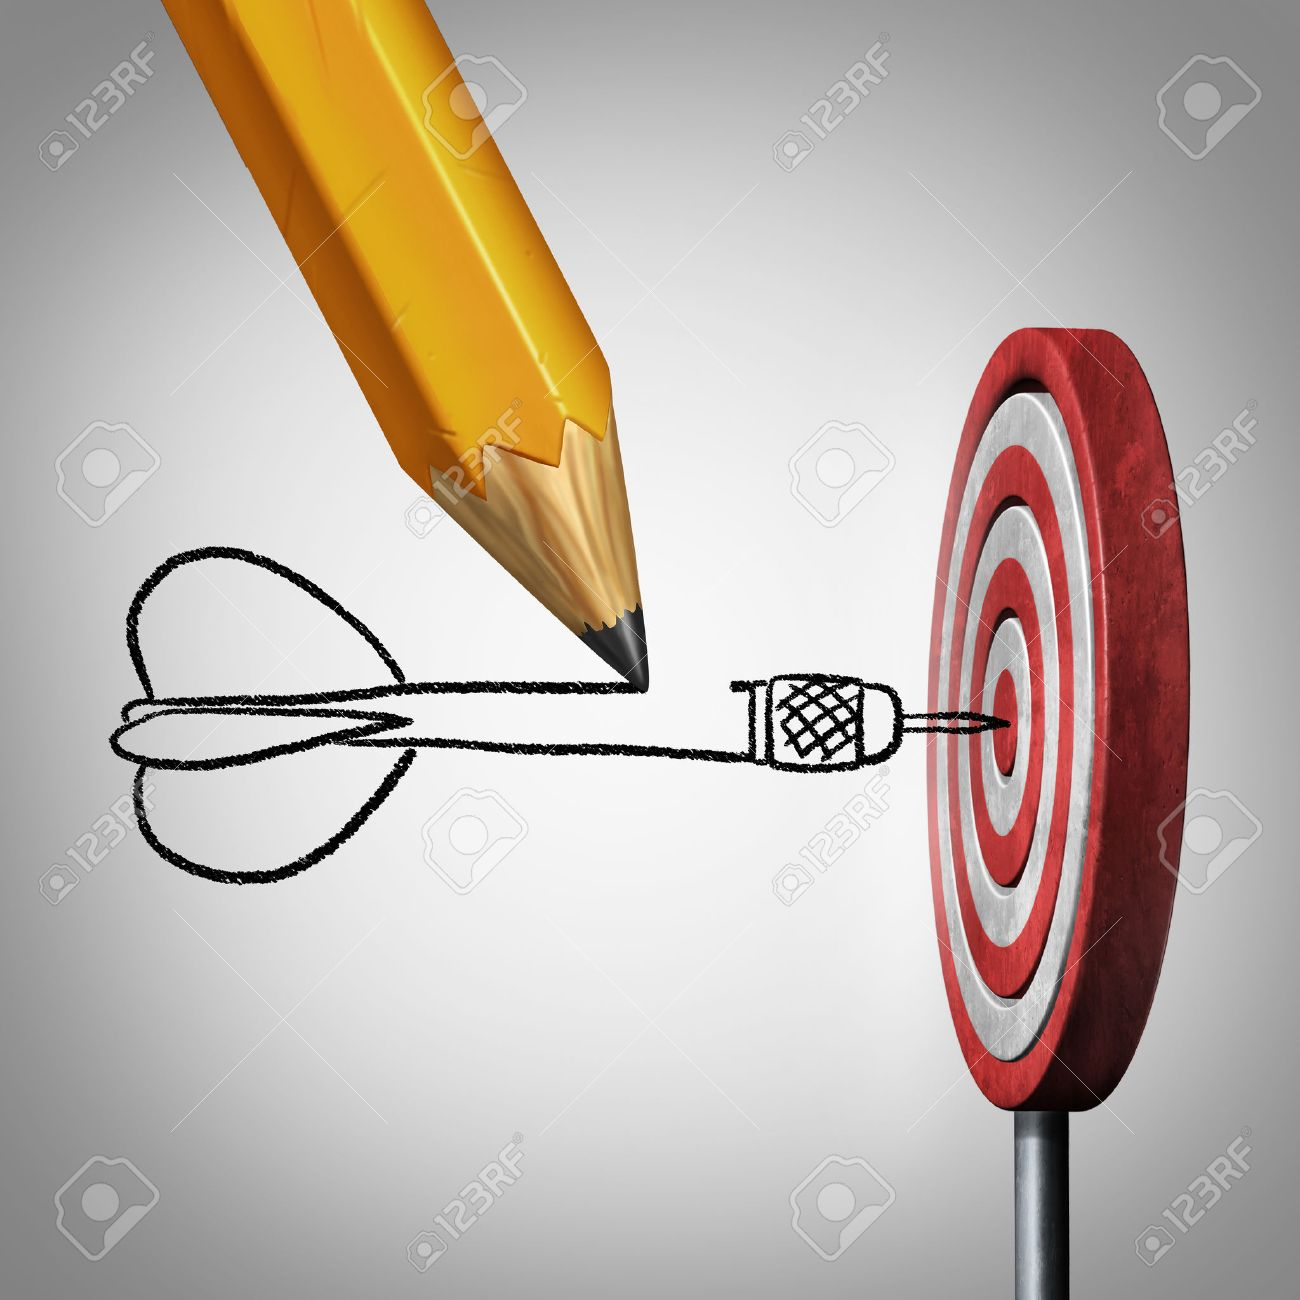 Success goal planning business concept as a pencil drawing a dart hitting the center of a target on a dartboard as a metaphor for controllig your destiny by creating a plan and visualization. - 52657696